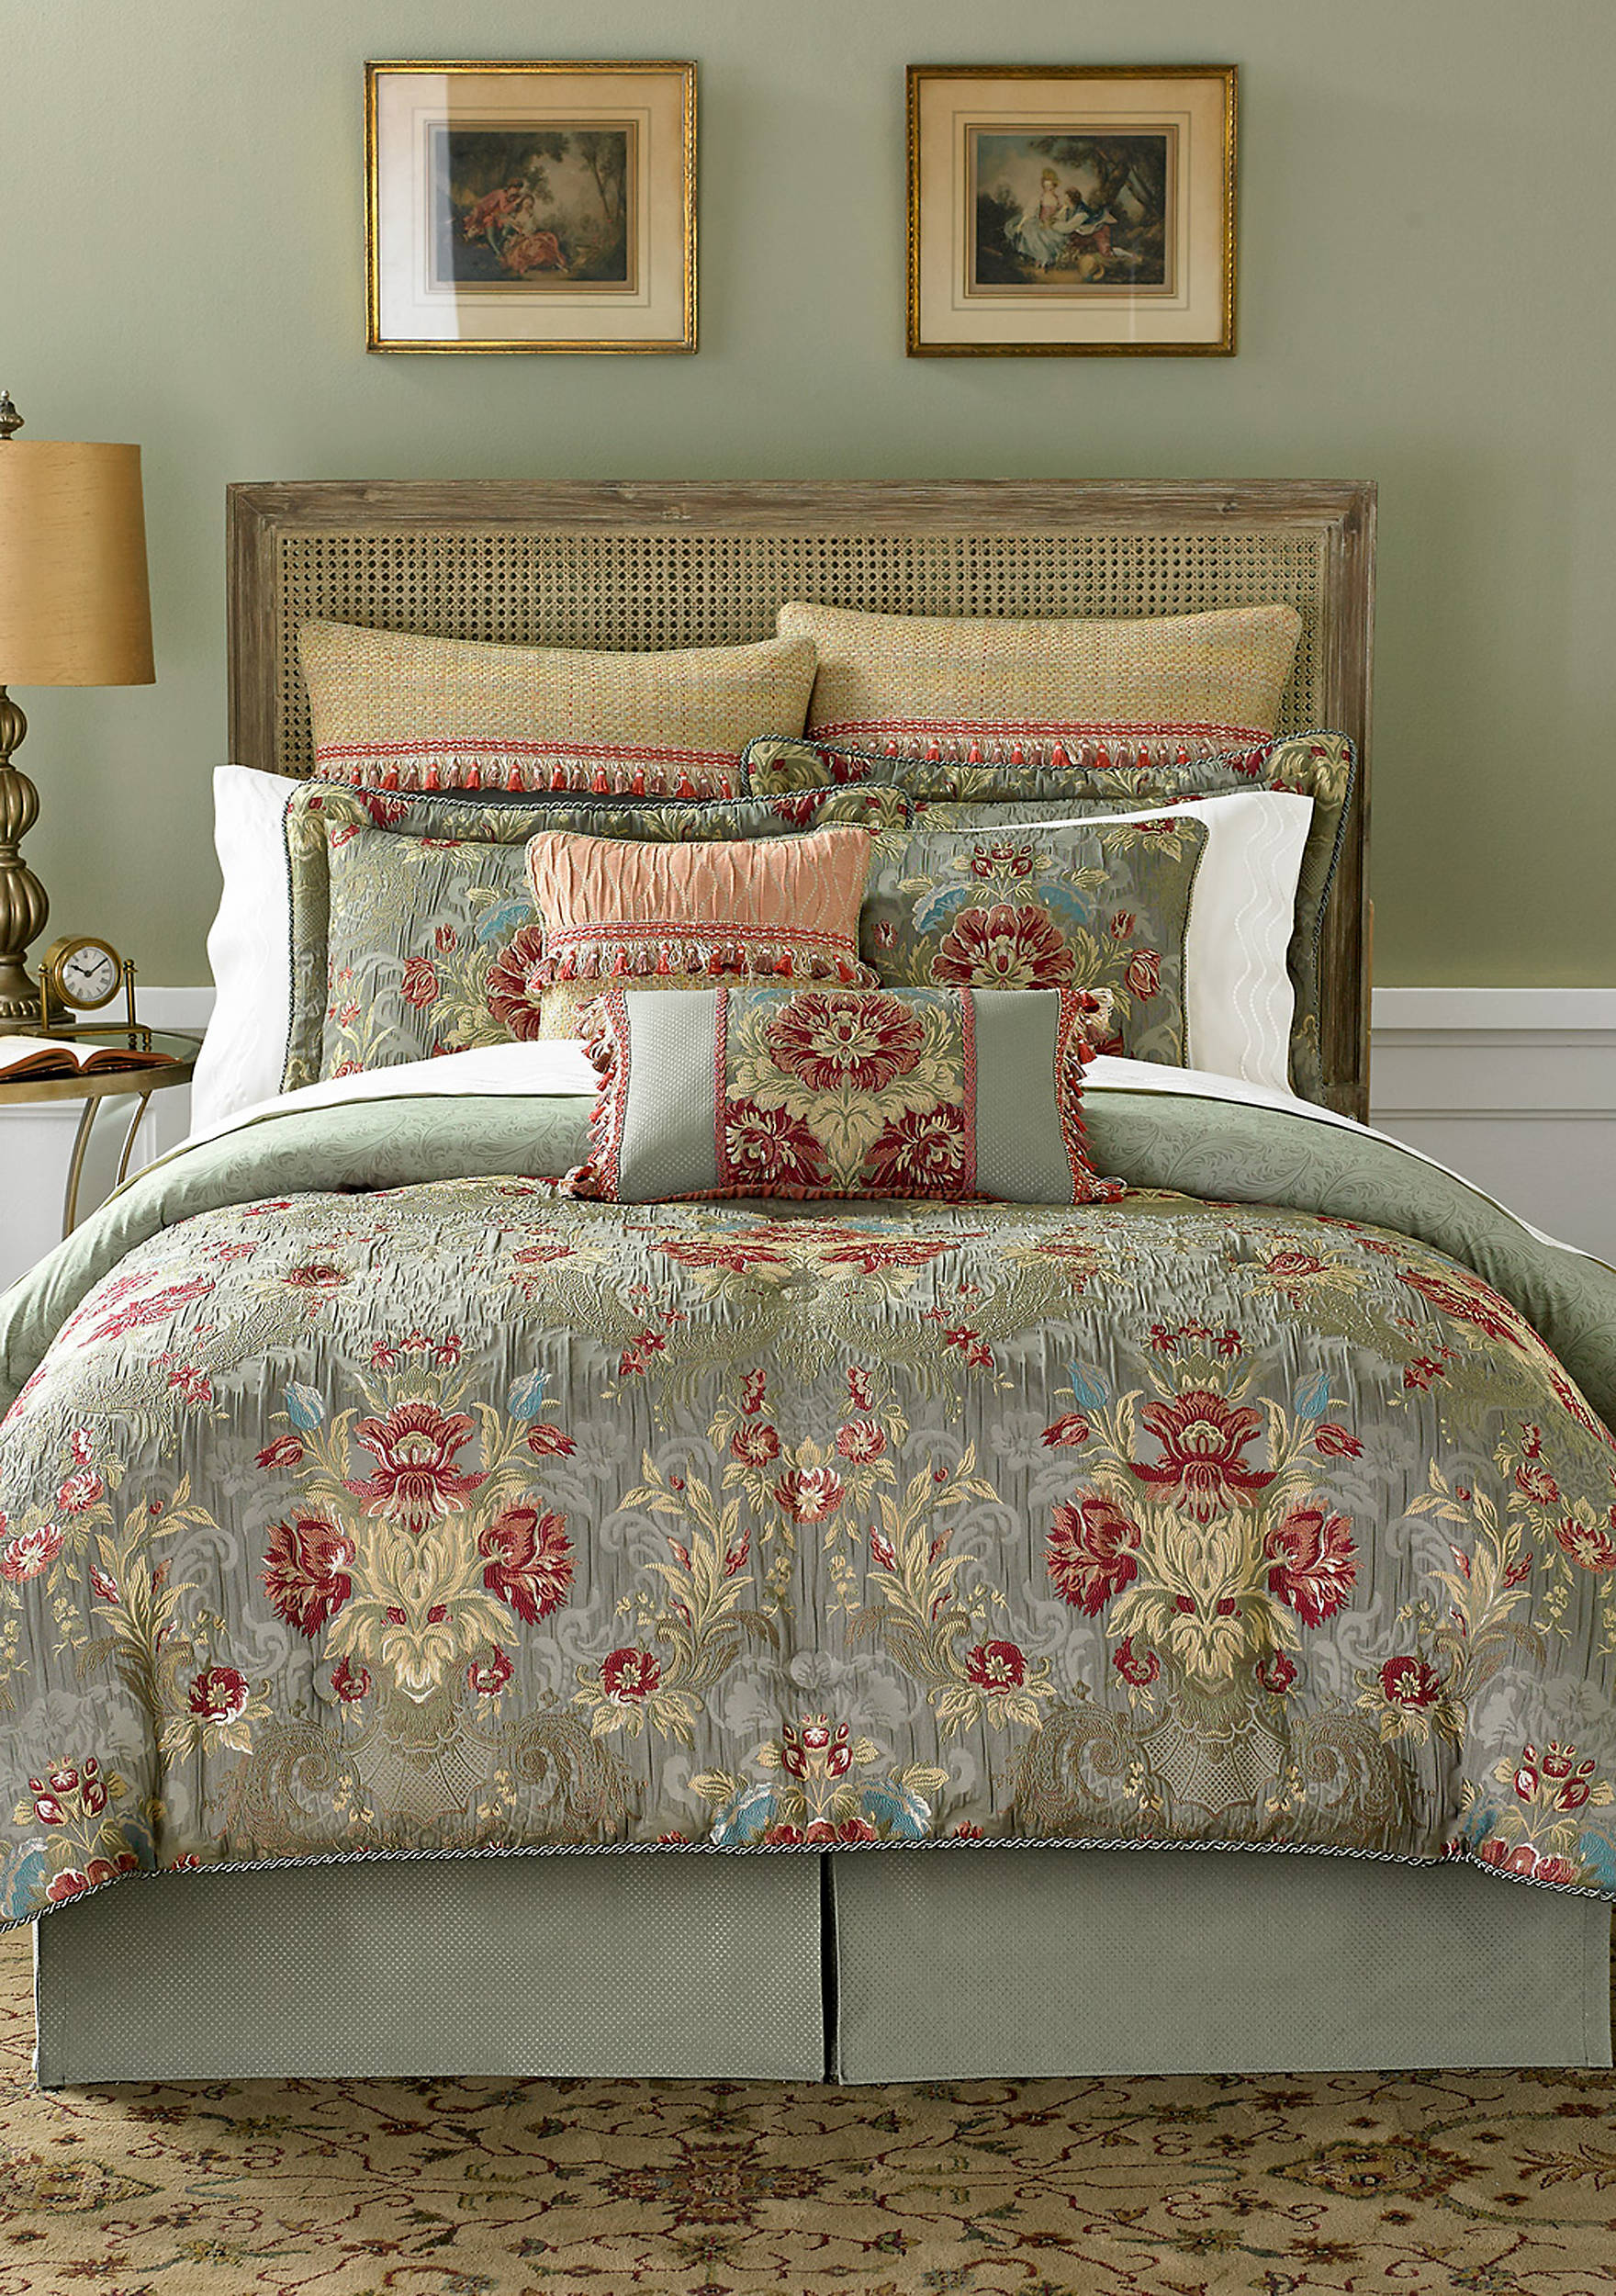 bedding product kassandra dabf bath sets overstock croscill shipping free comforter today set